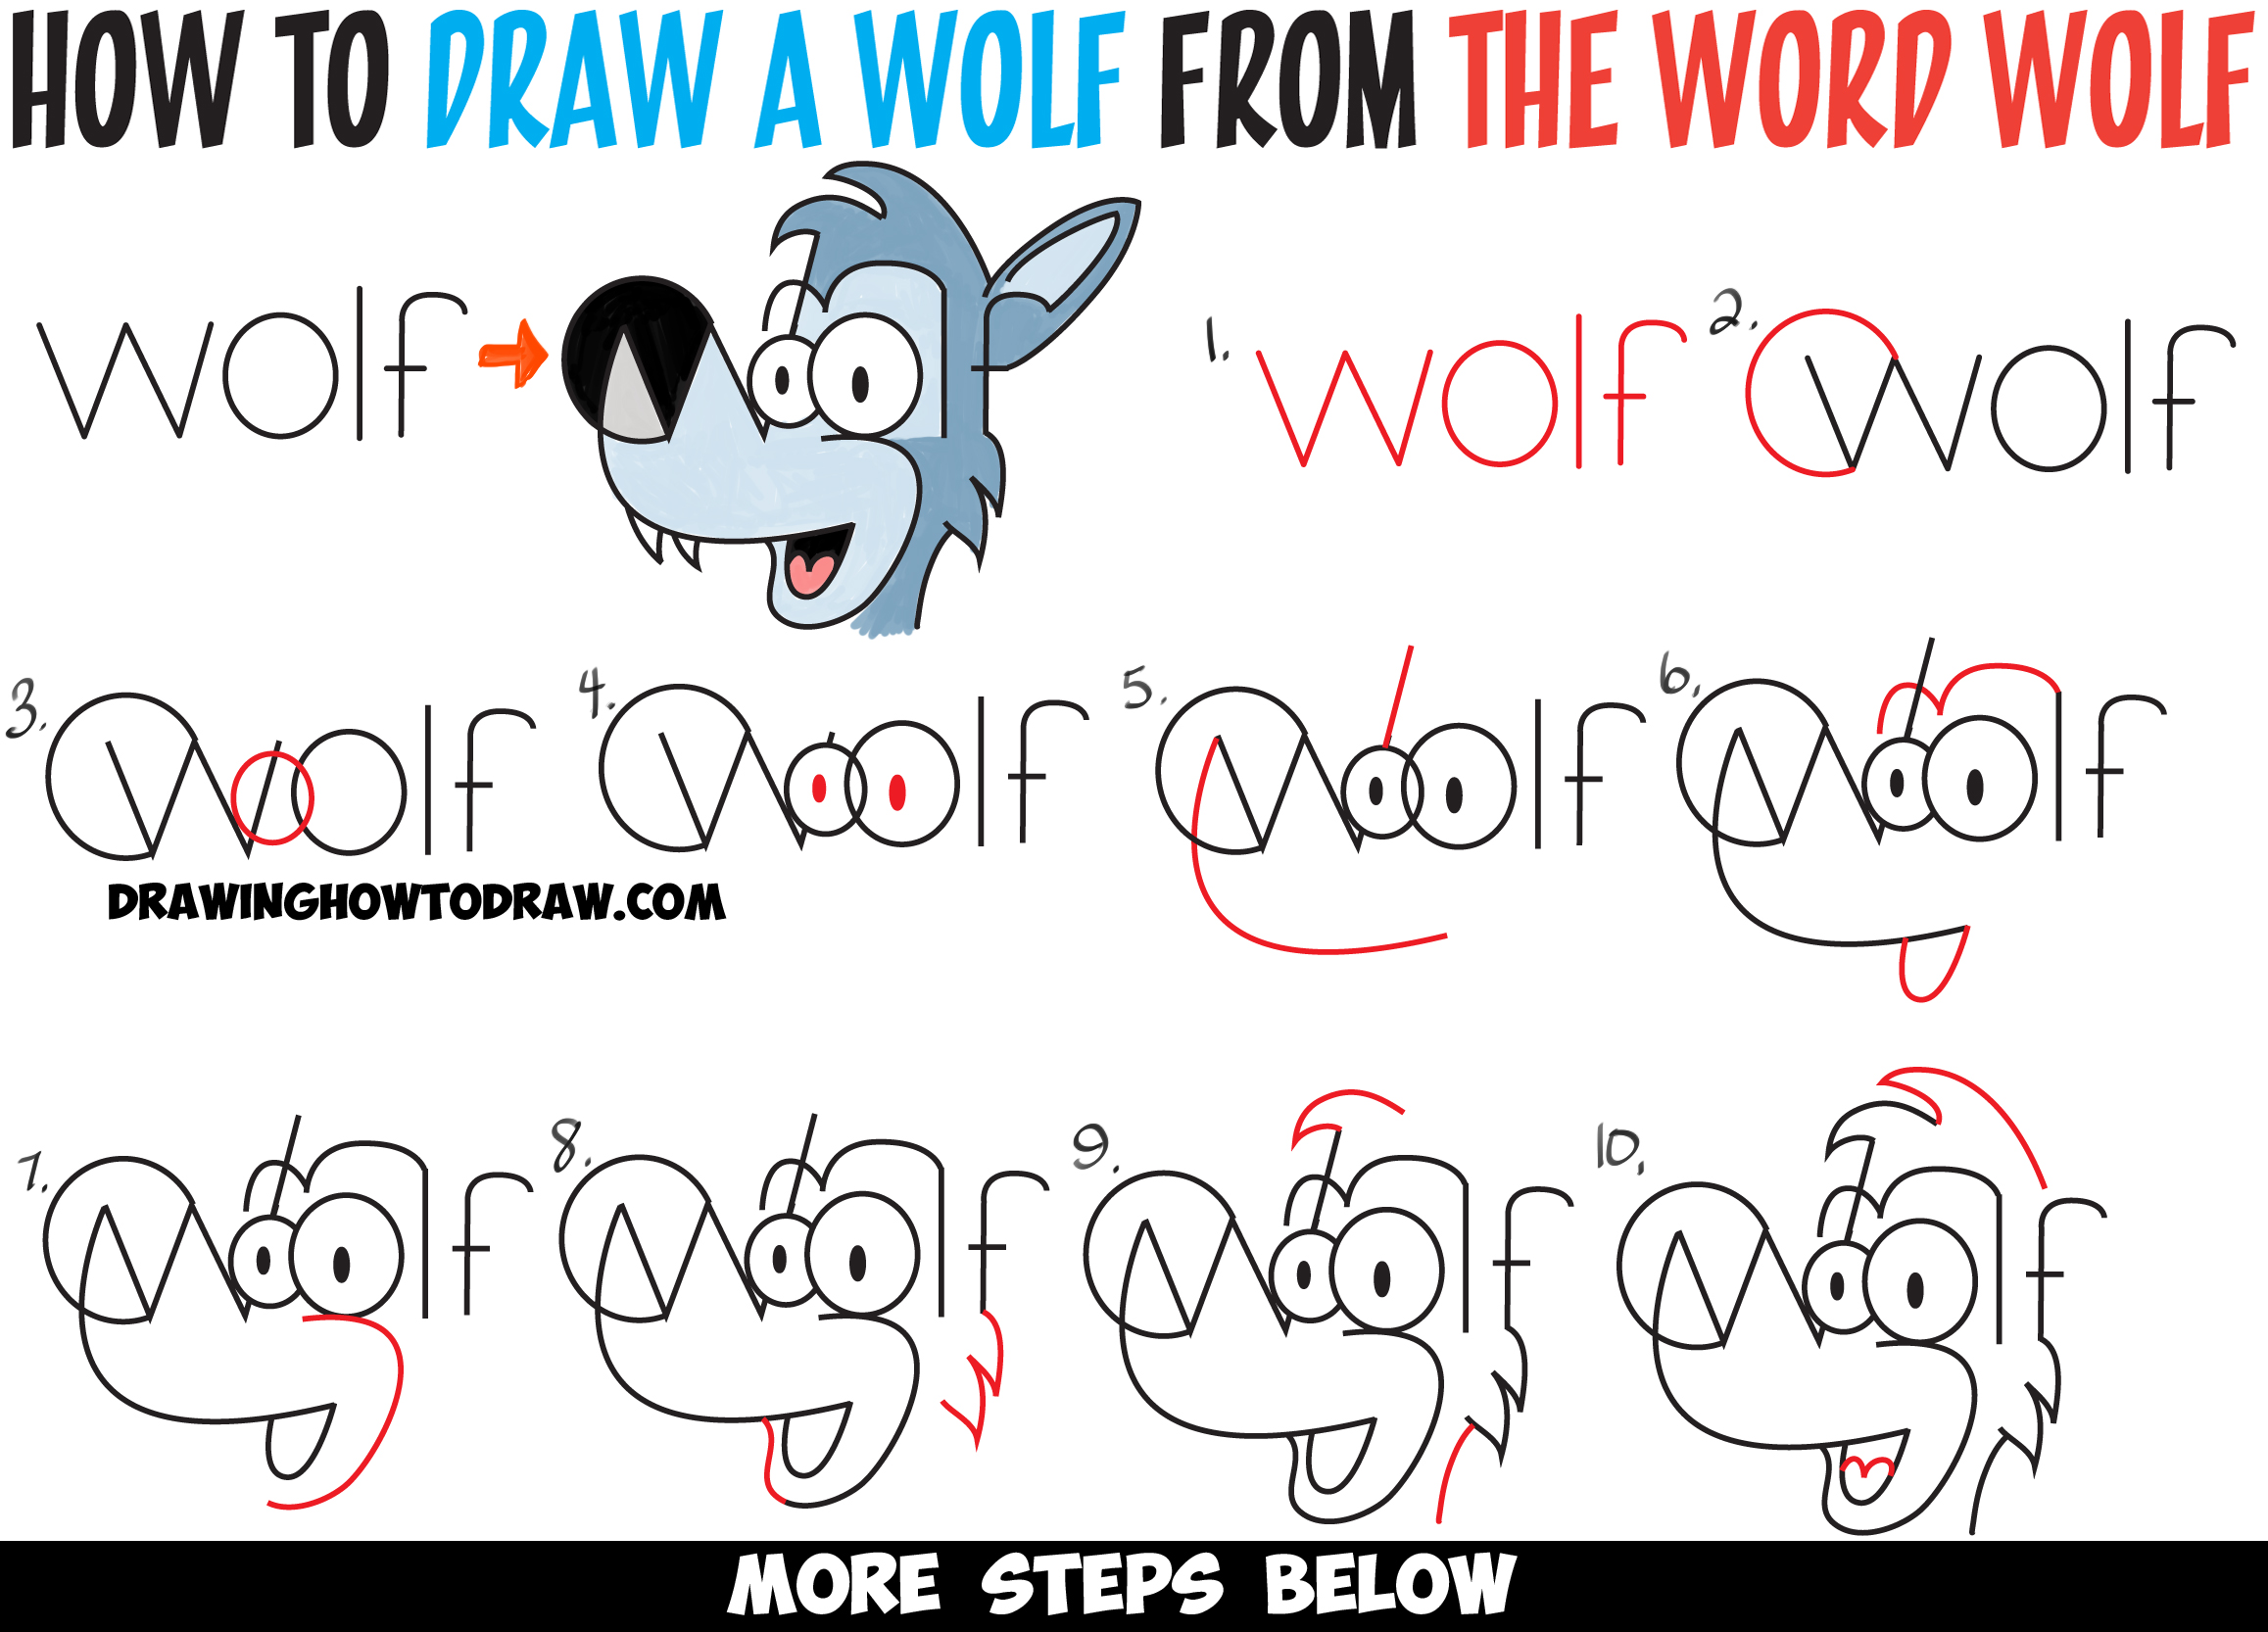 Learn How to Draw Cartoon Wolves from the Word - Cartoon Wolf Simple Step by Step Drawing Lesson for Kids